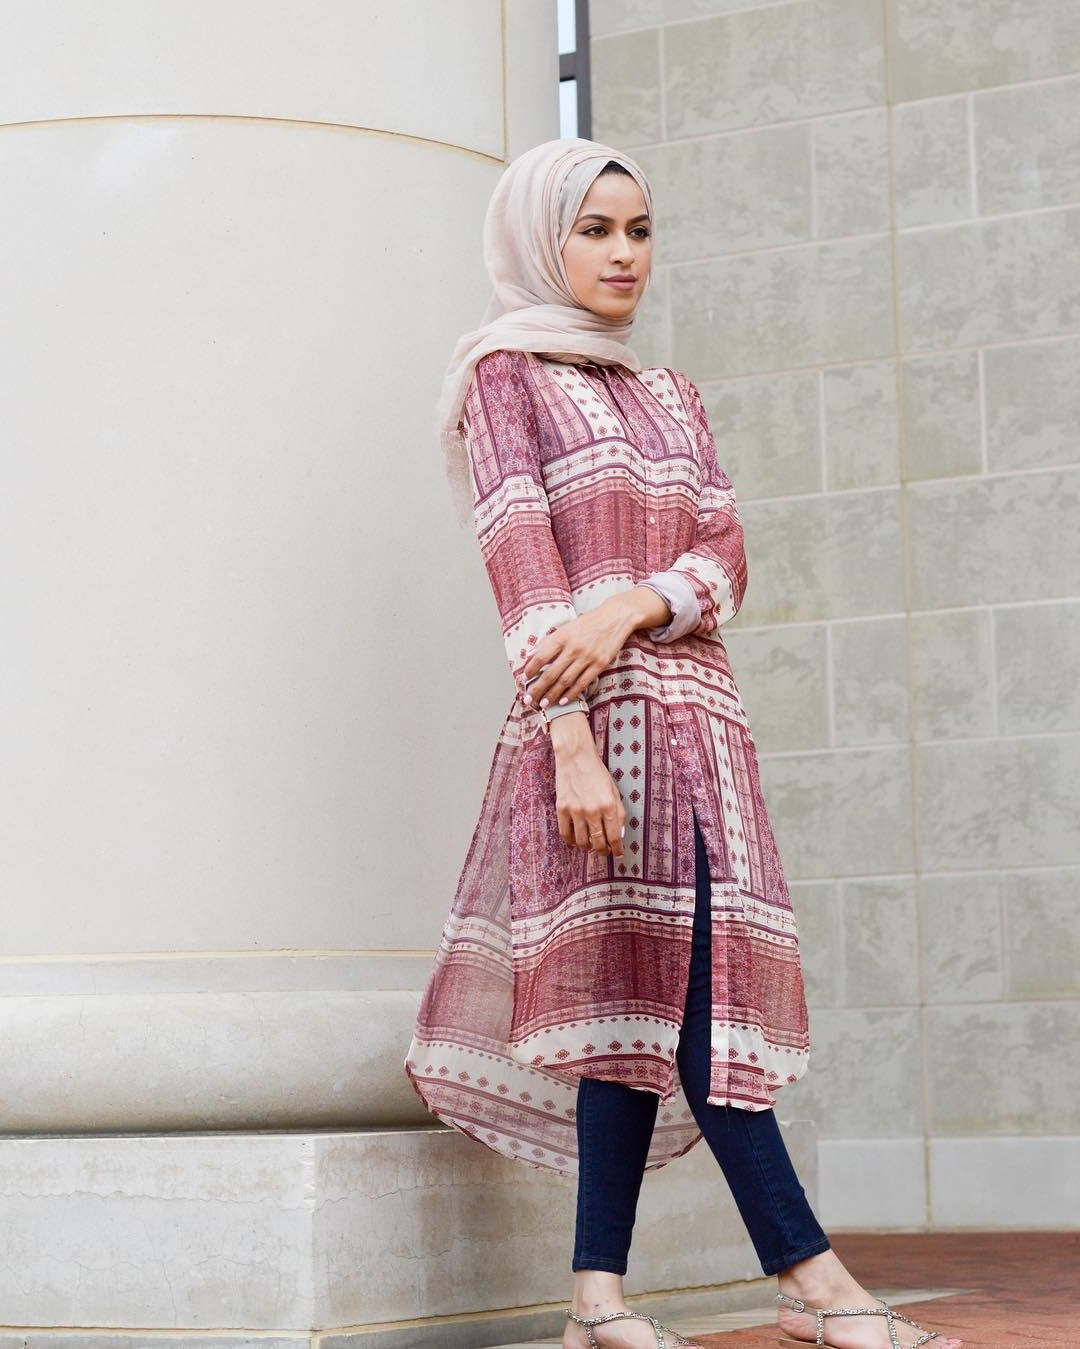 Ide Fashion Muslimah 4pde Love & Encouragement to All the La S Out there